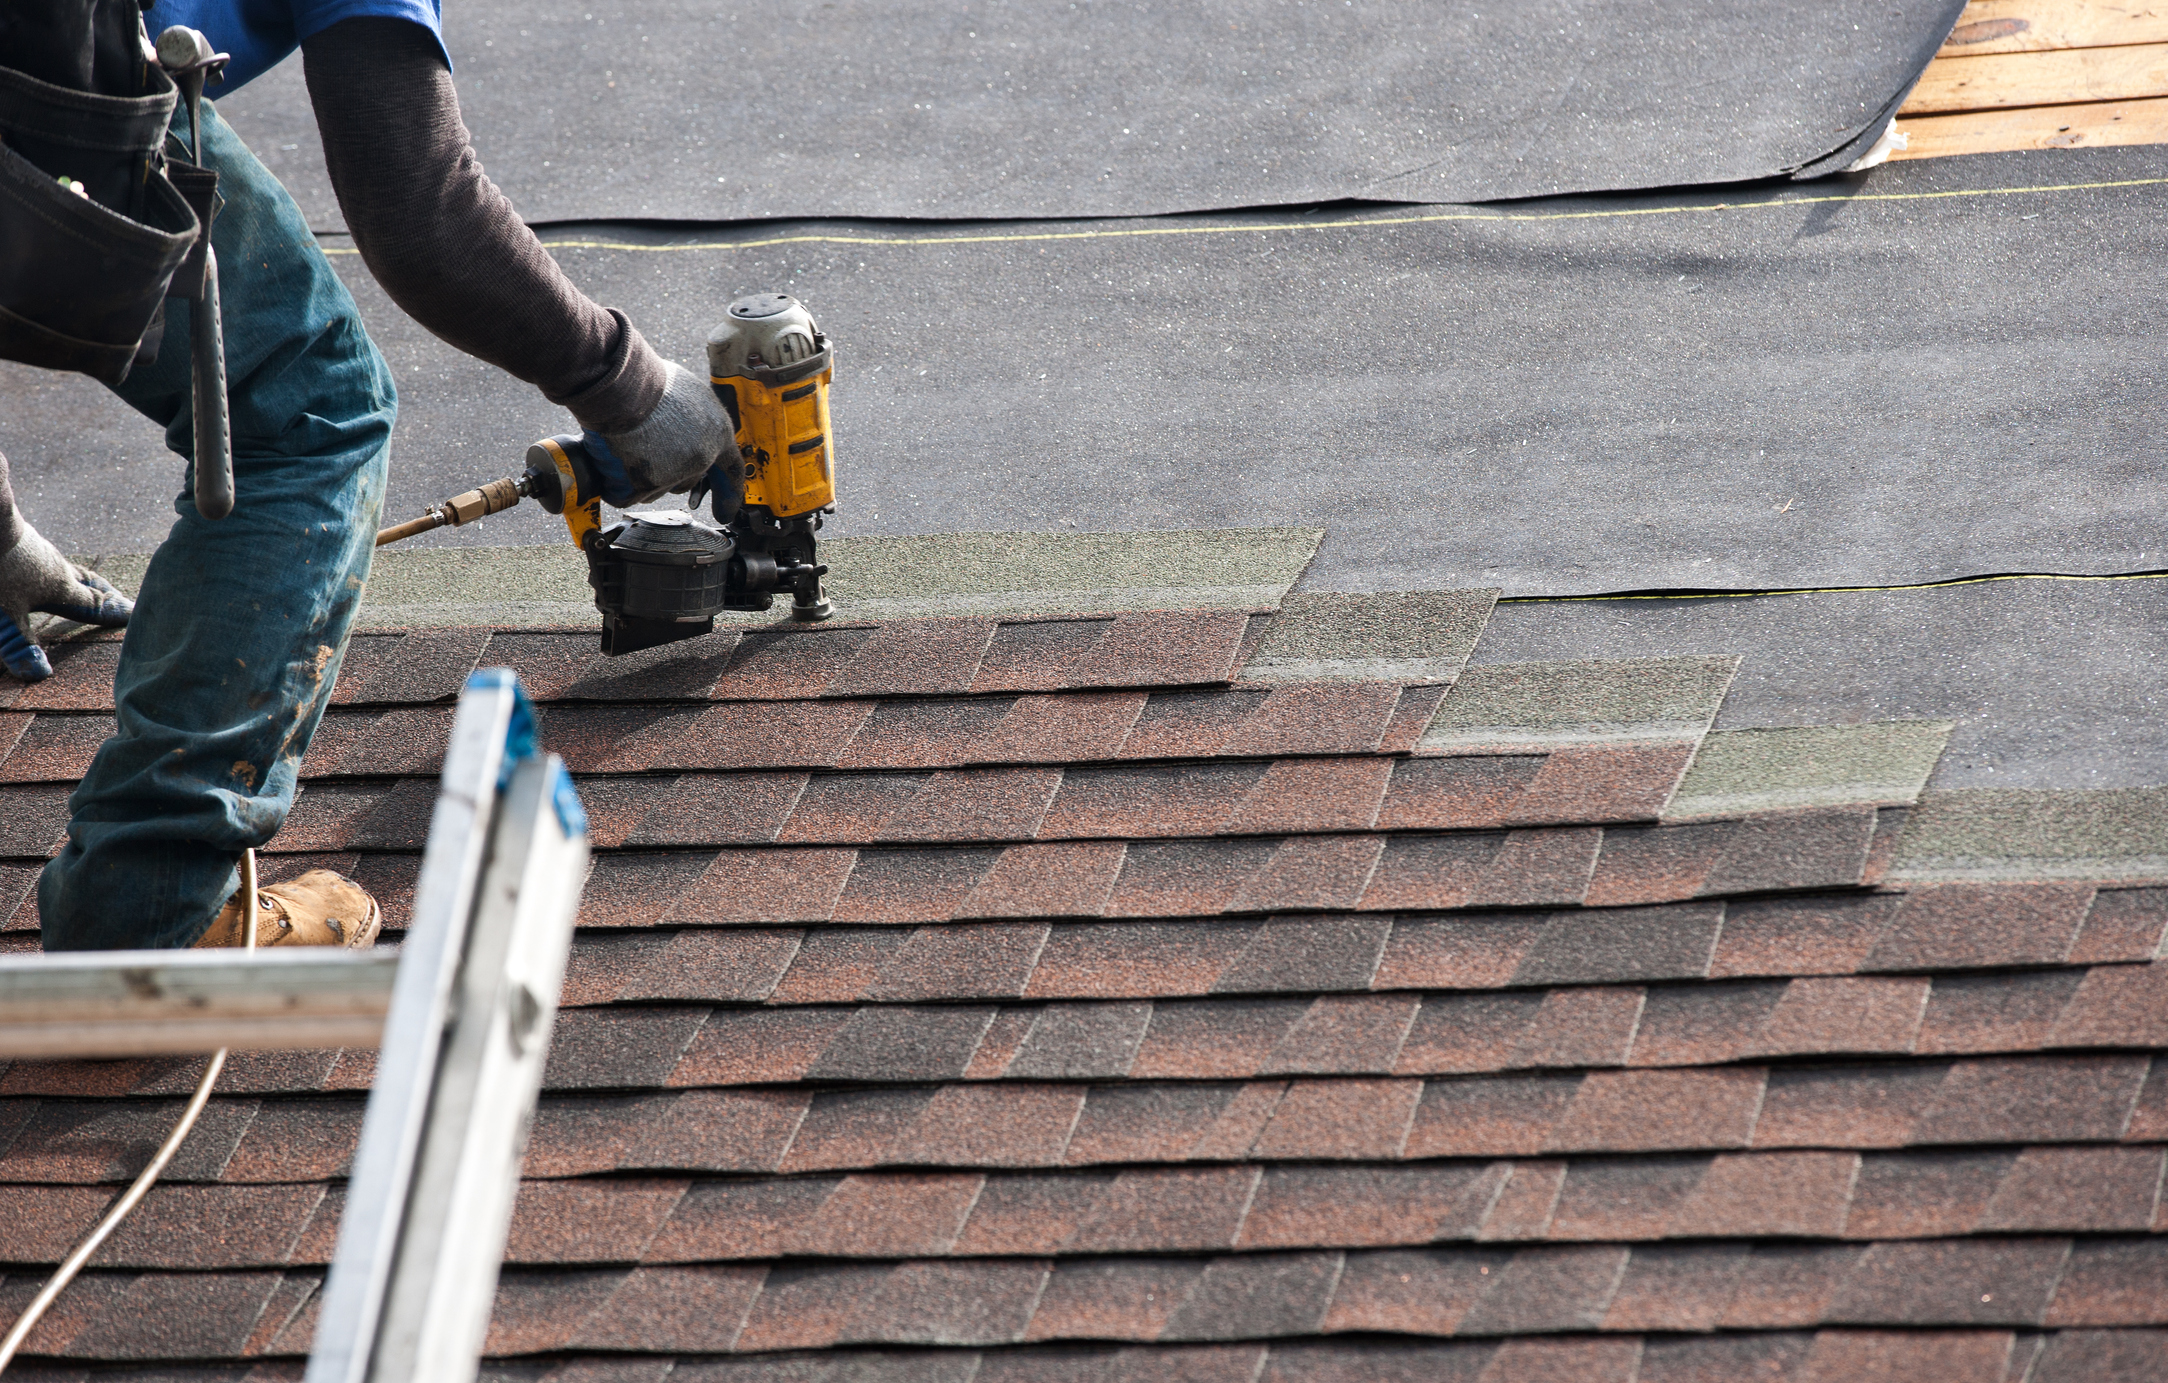 Choosing the Correct Roof Shingle or Coating for You